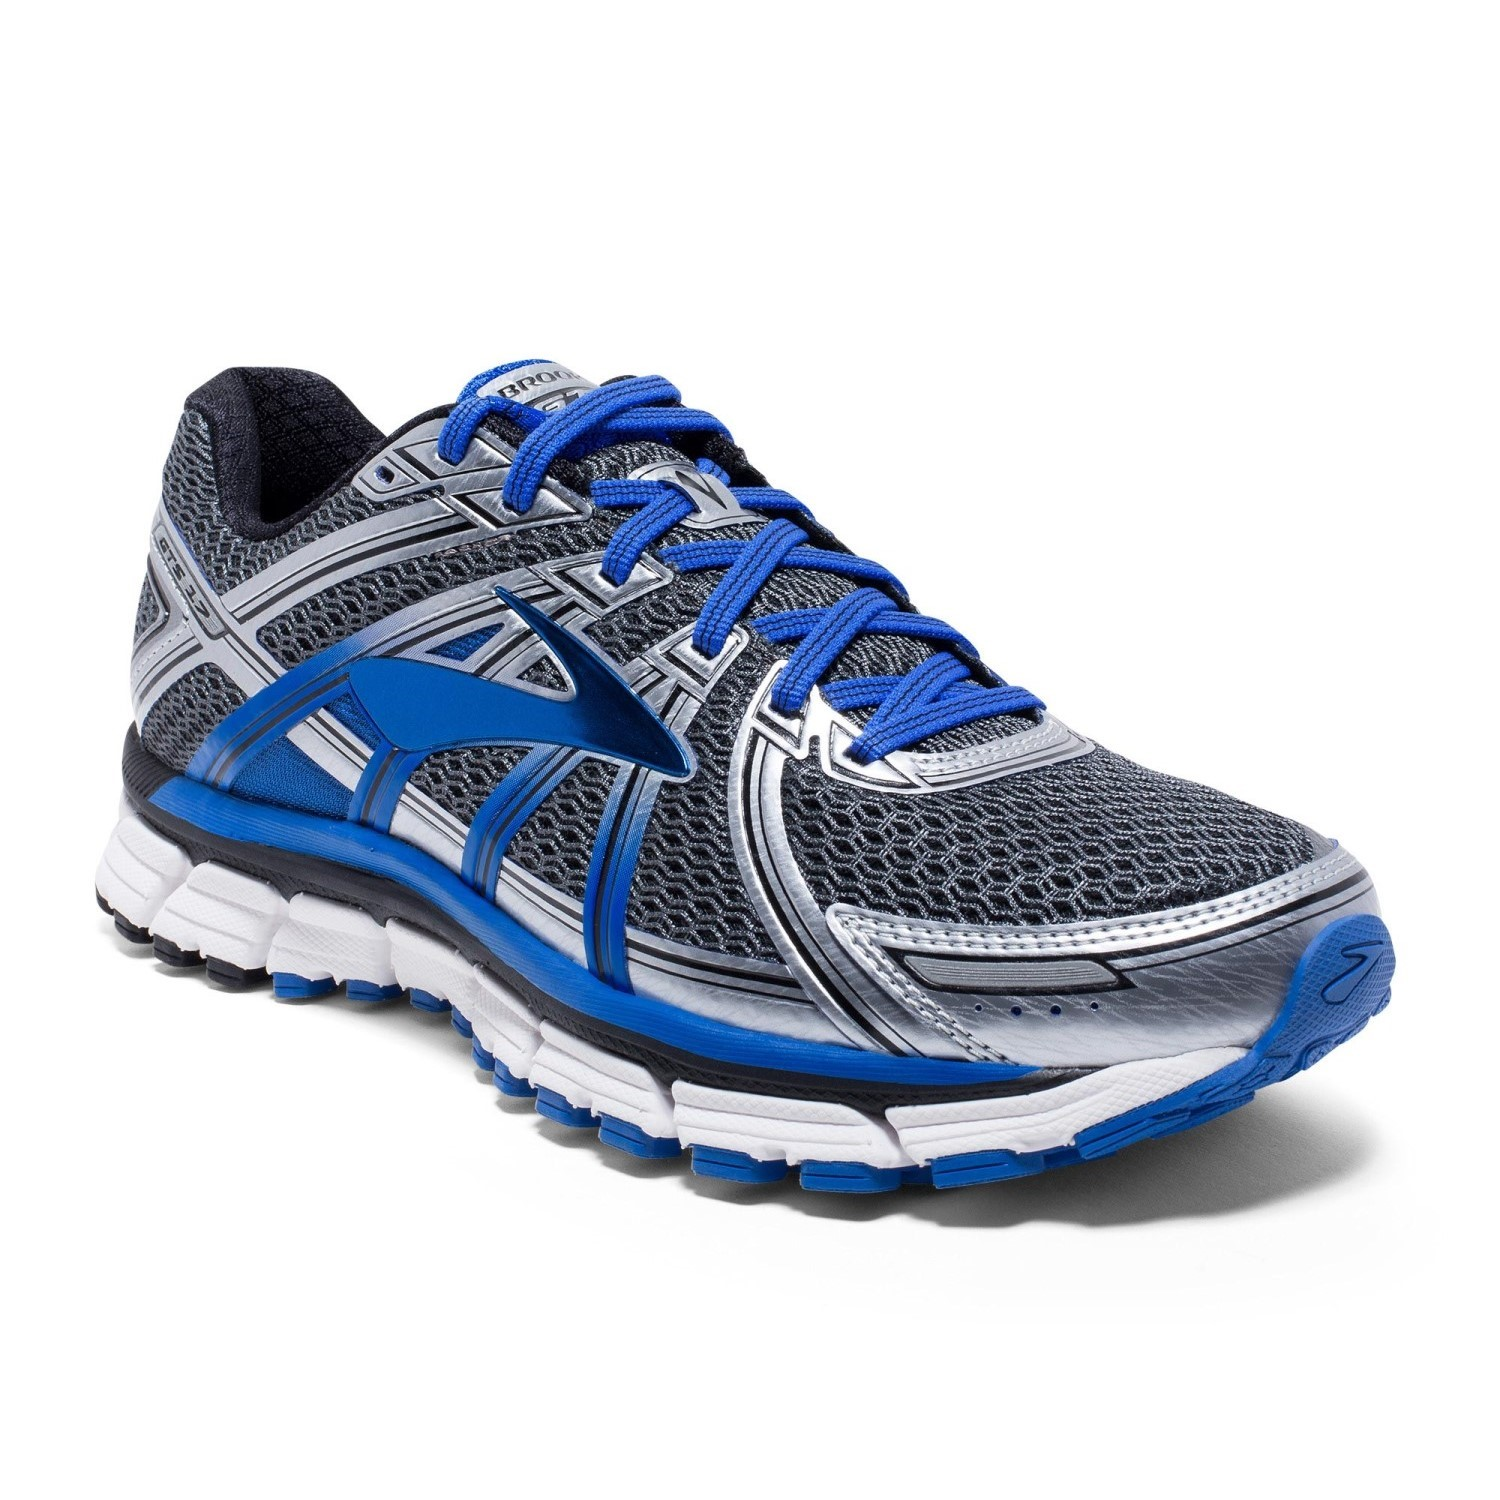 Brooks Adrenaline Running Shoes Size